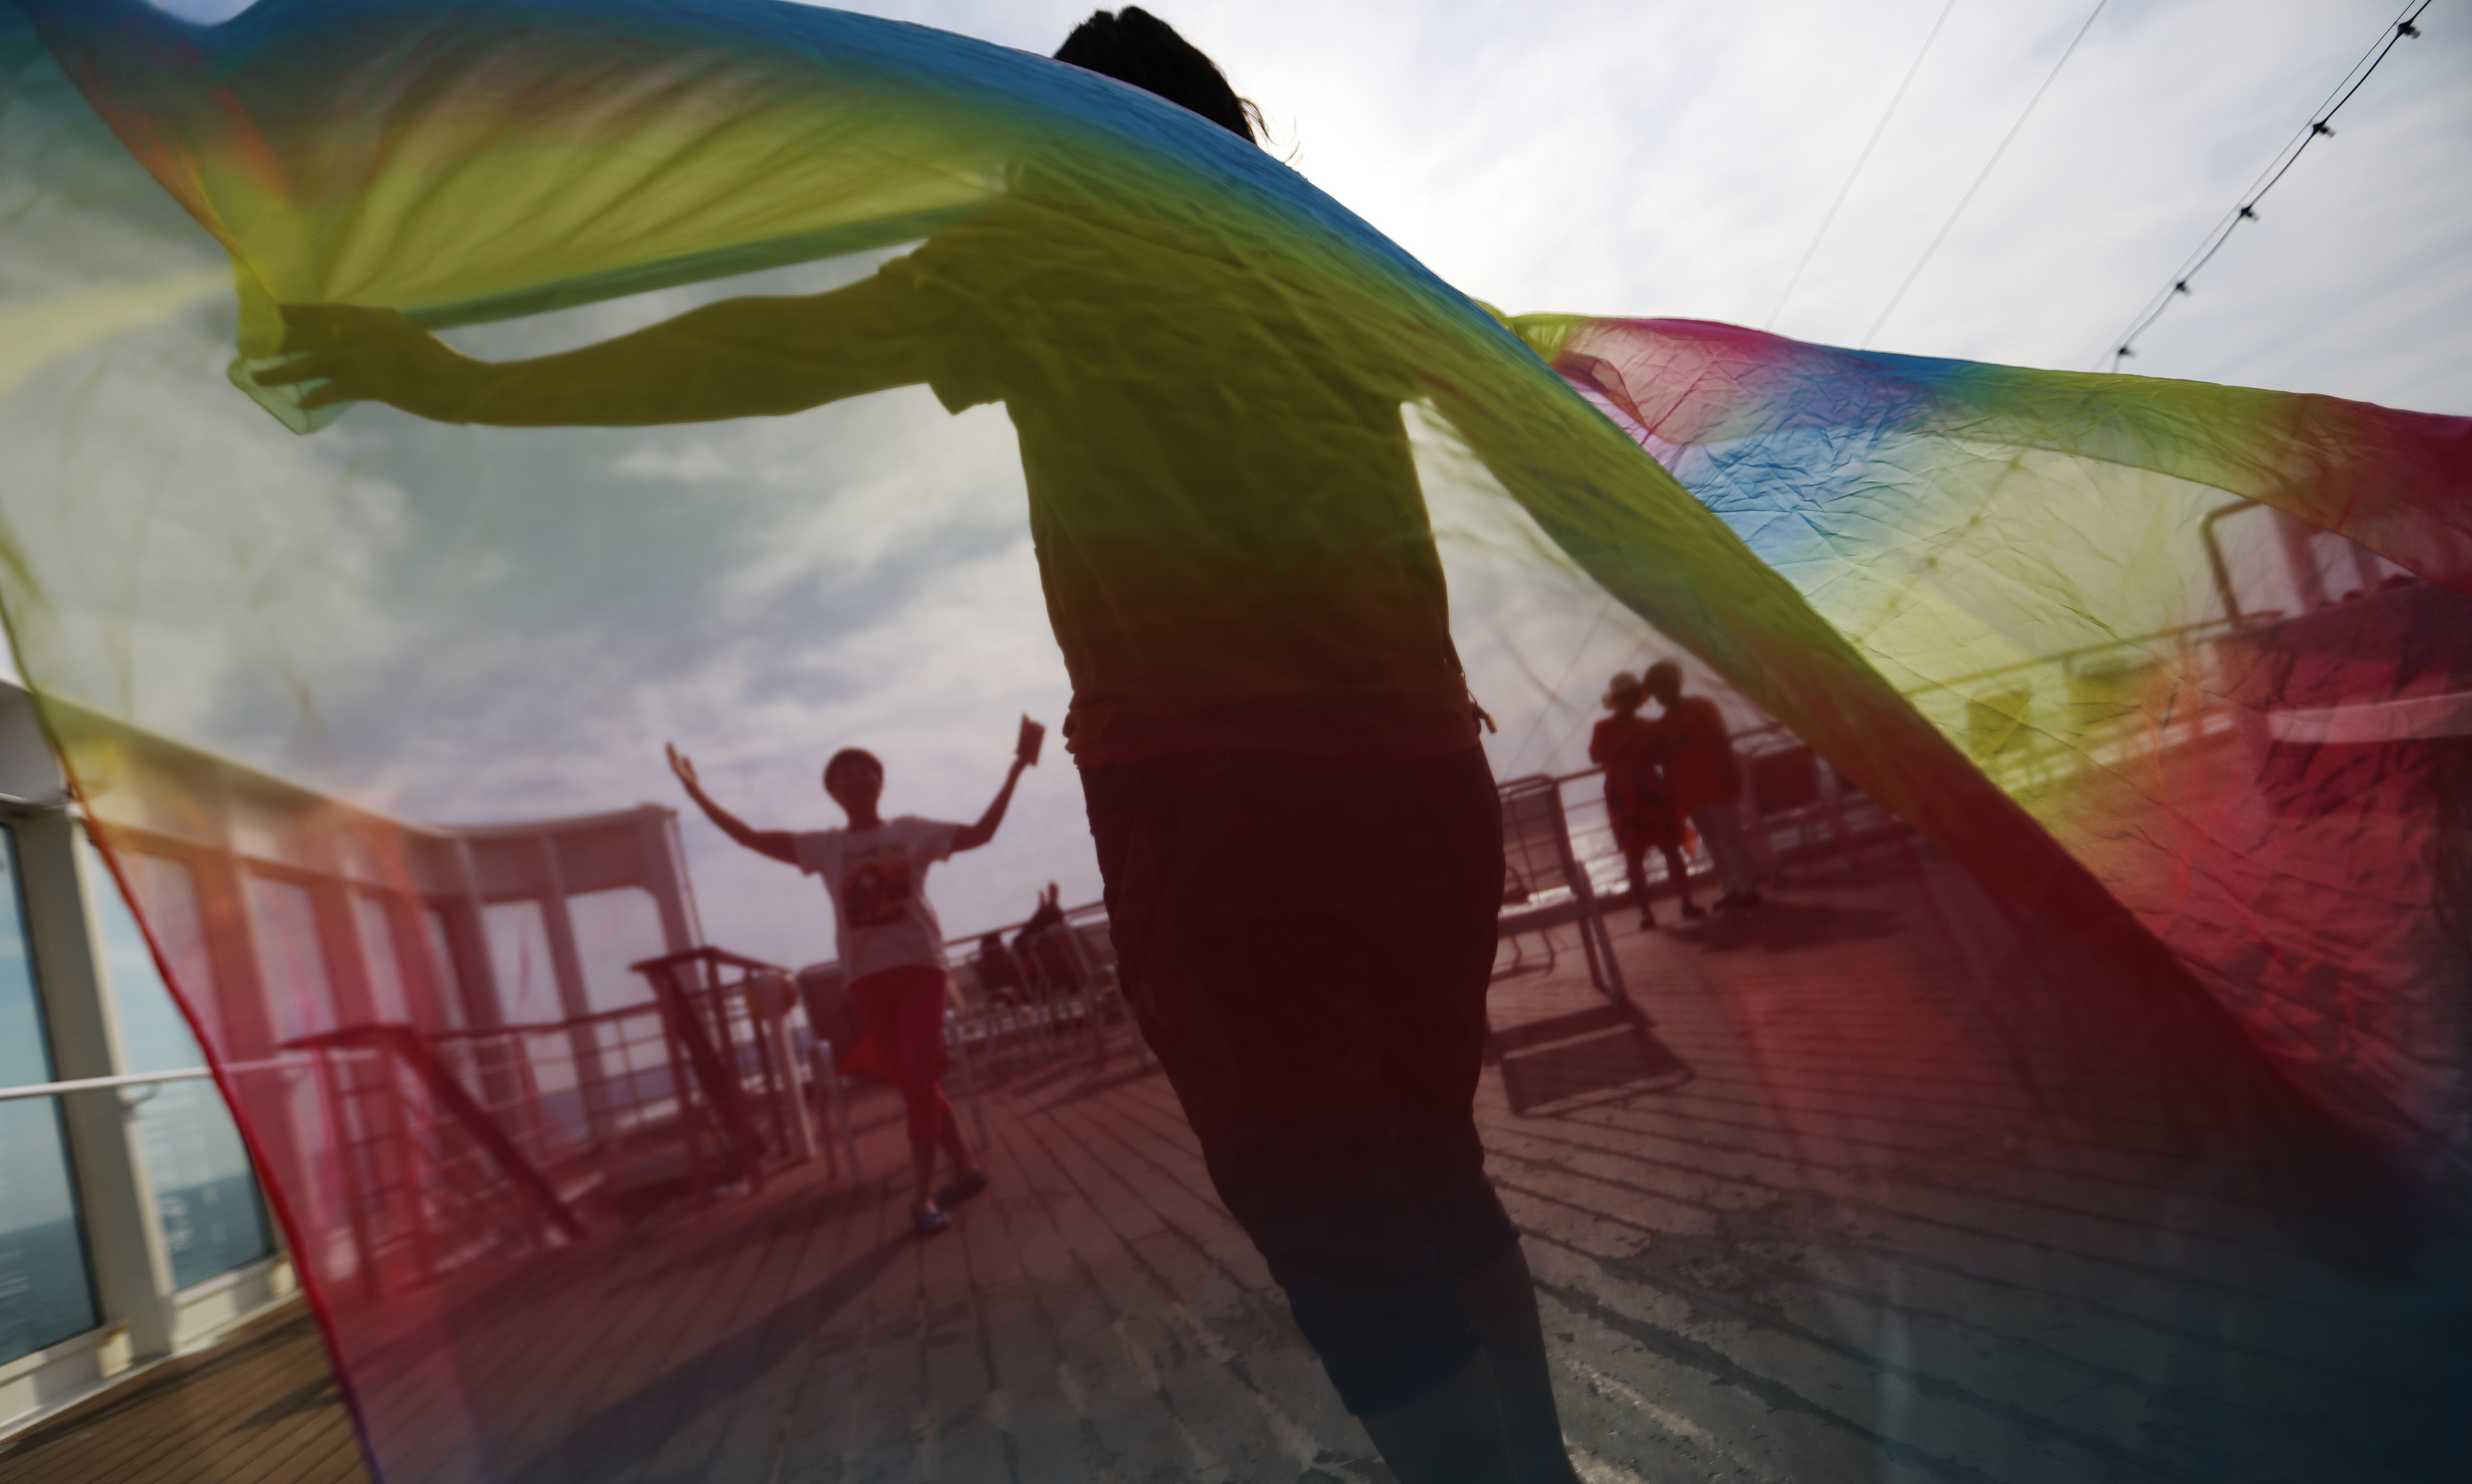 epa06037446 (03/34) Members of the Parents and Friends of Lesbians and Gays (PFLAG) China organisation pose for photos with a rainbow coloured scarf on the deck of a cruise where the 10th National PFLAG conference on open seas on route to Sasebo, Japan, 15 June 2017. About 800 members of the Chinese LGBT (lesbian, gay, bisexual and transgender) community and their parents spent four days on a cruise trip organised by Parents and Friends of Lesbians and Gays (PFLAG) China, a grassroots non-government organisation, celebrating the 10th anniversary of the organisation. It aims to promote coexistence among homosexuals and their families.  EPA/HOW HWEE YOUNG CHINA OUT ATTENTION: For the full PHOTO ESSAY text please see Advisory Notice epa06037443